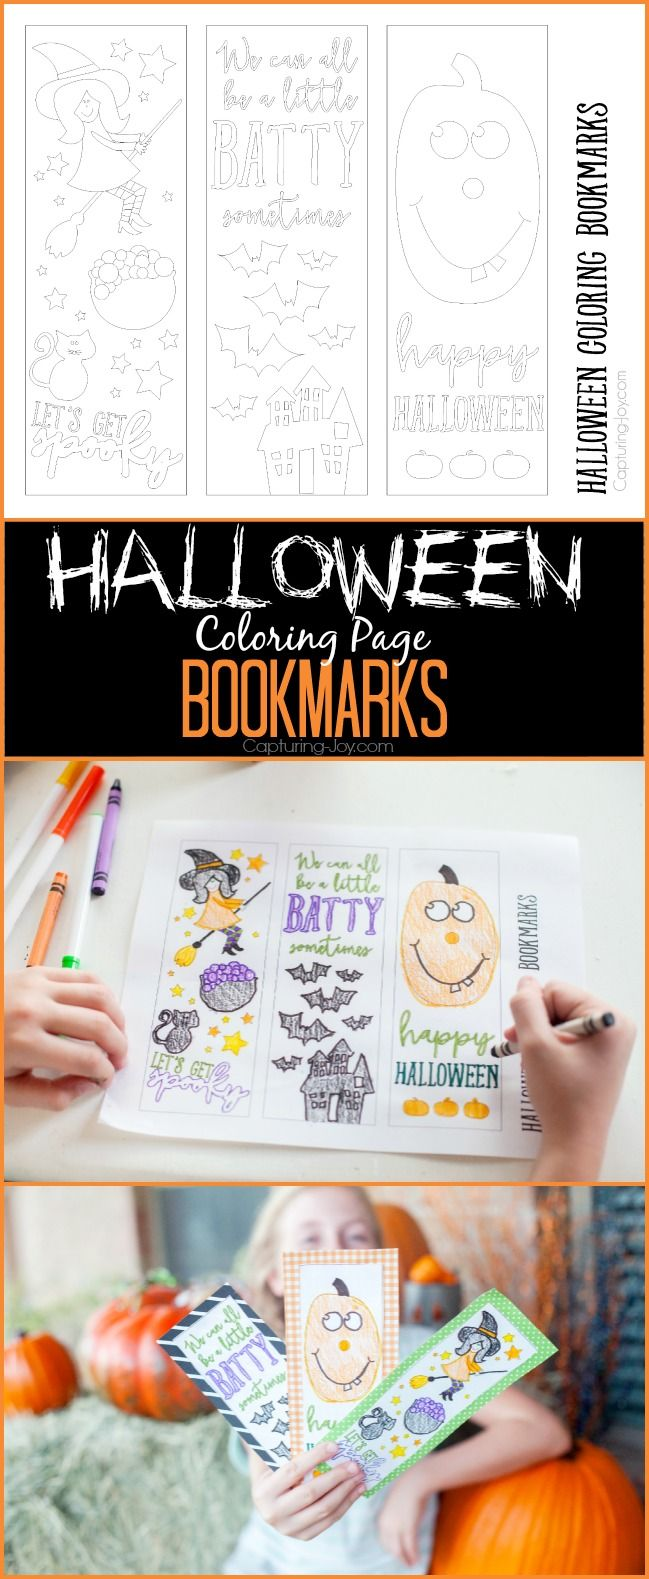 Halloween Coloring Page Free bookmarks